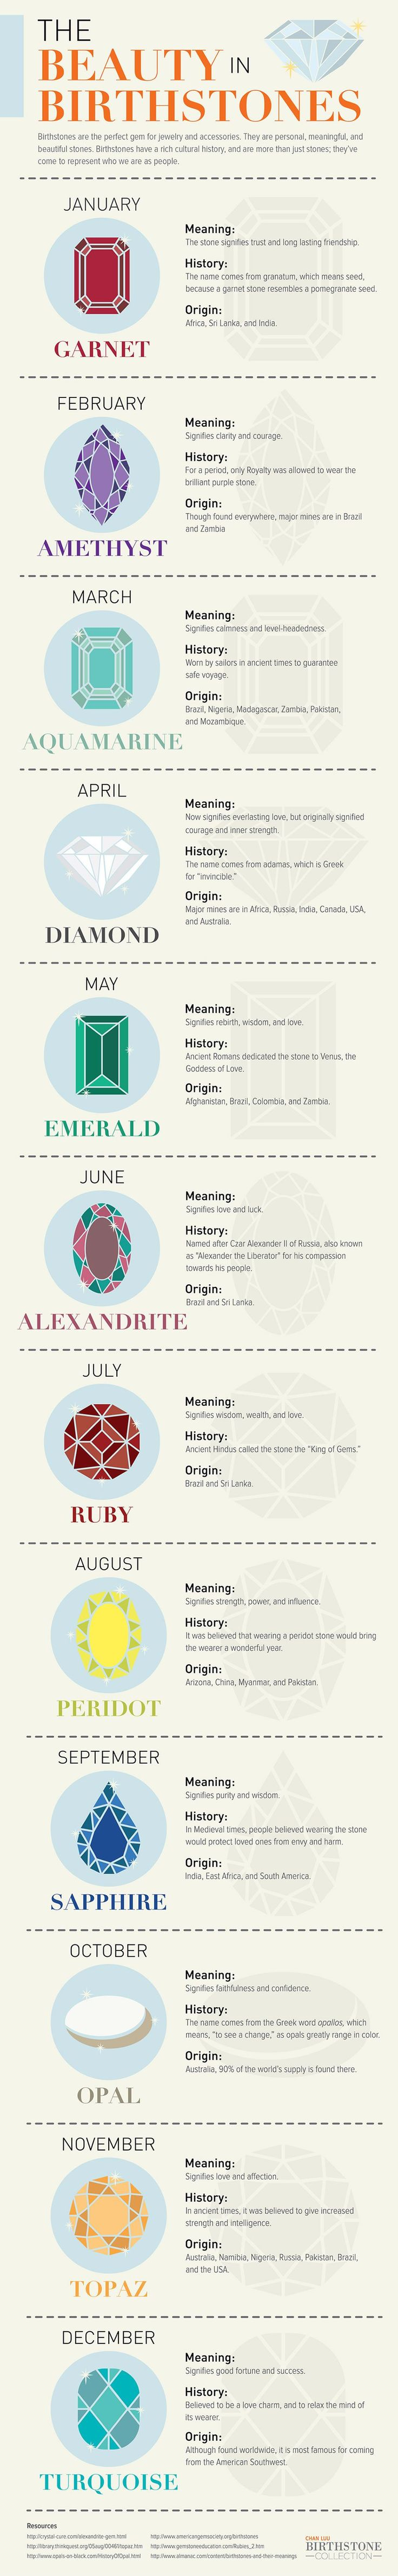 The Beauty in Birthstones #Infographic #LifeStyle